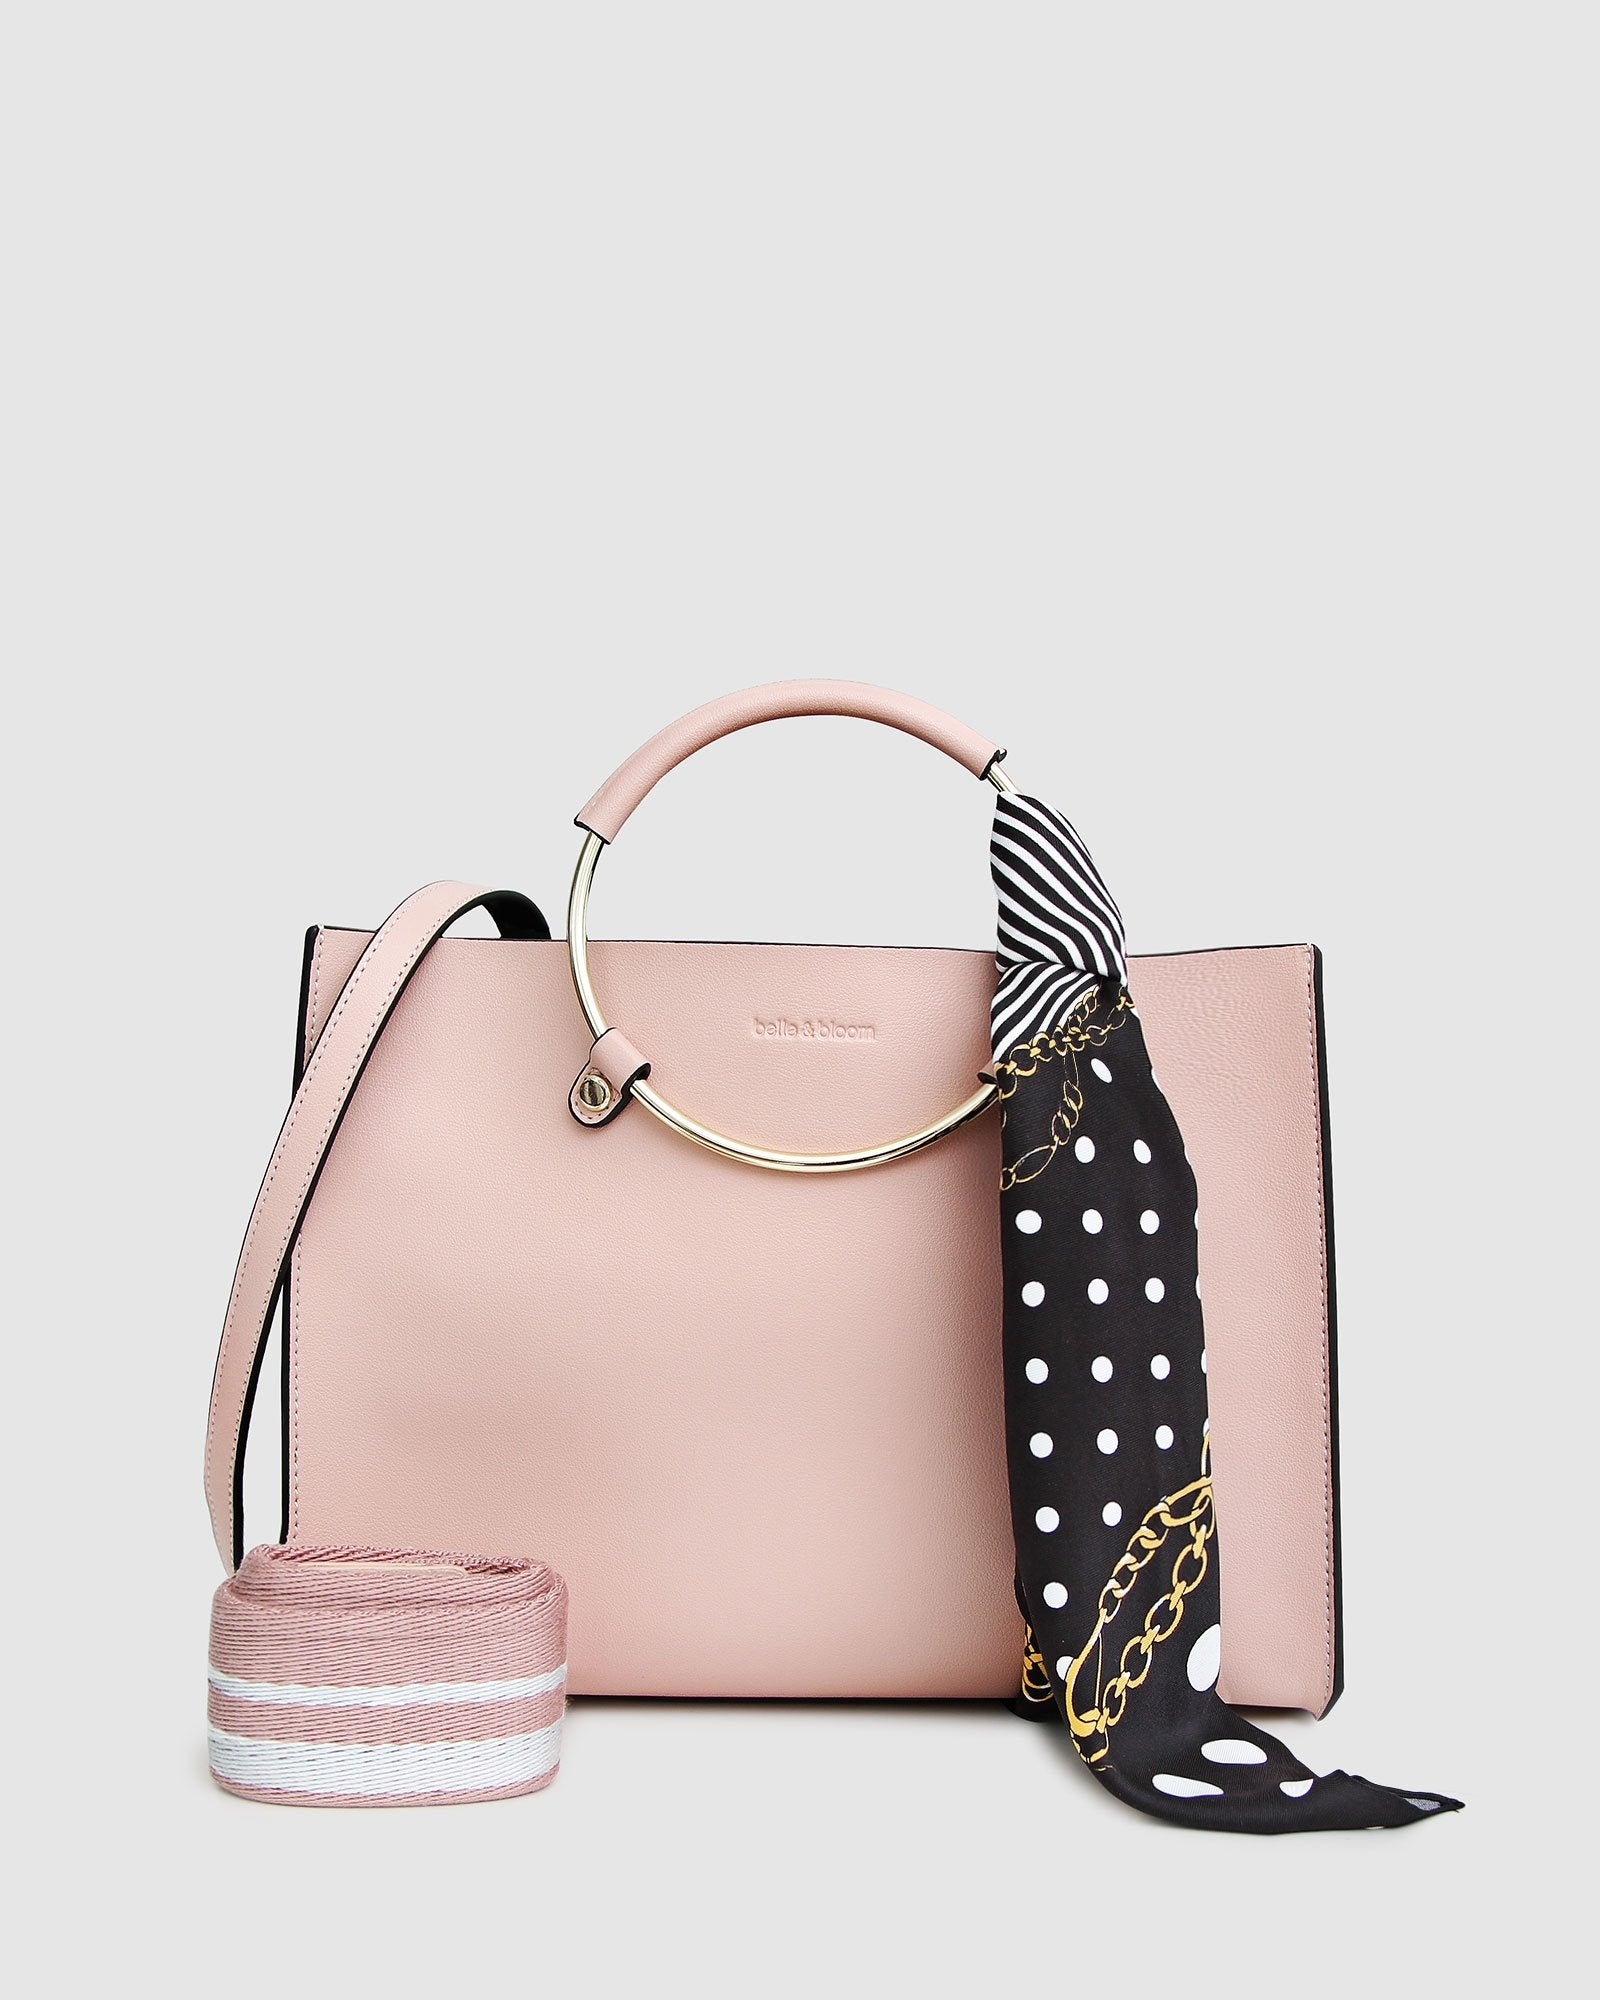 Palm Beach Satchel With Scarf - Blush Pink